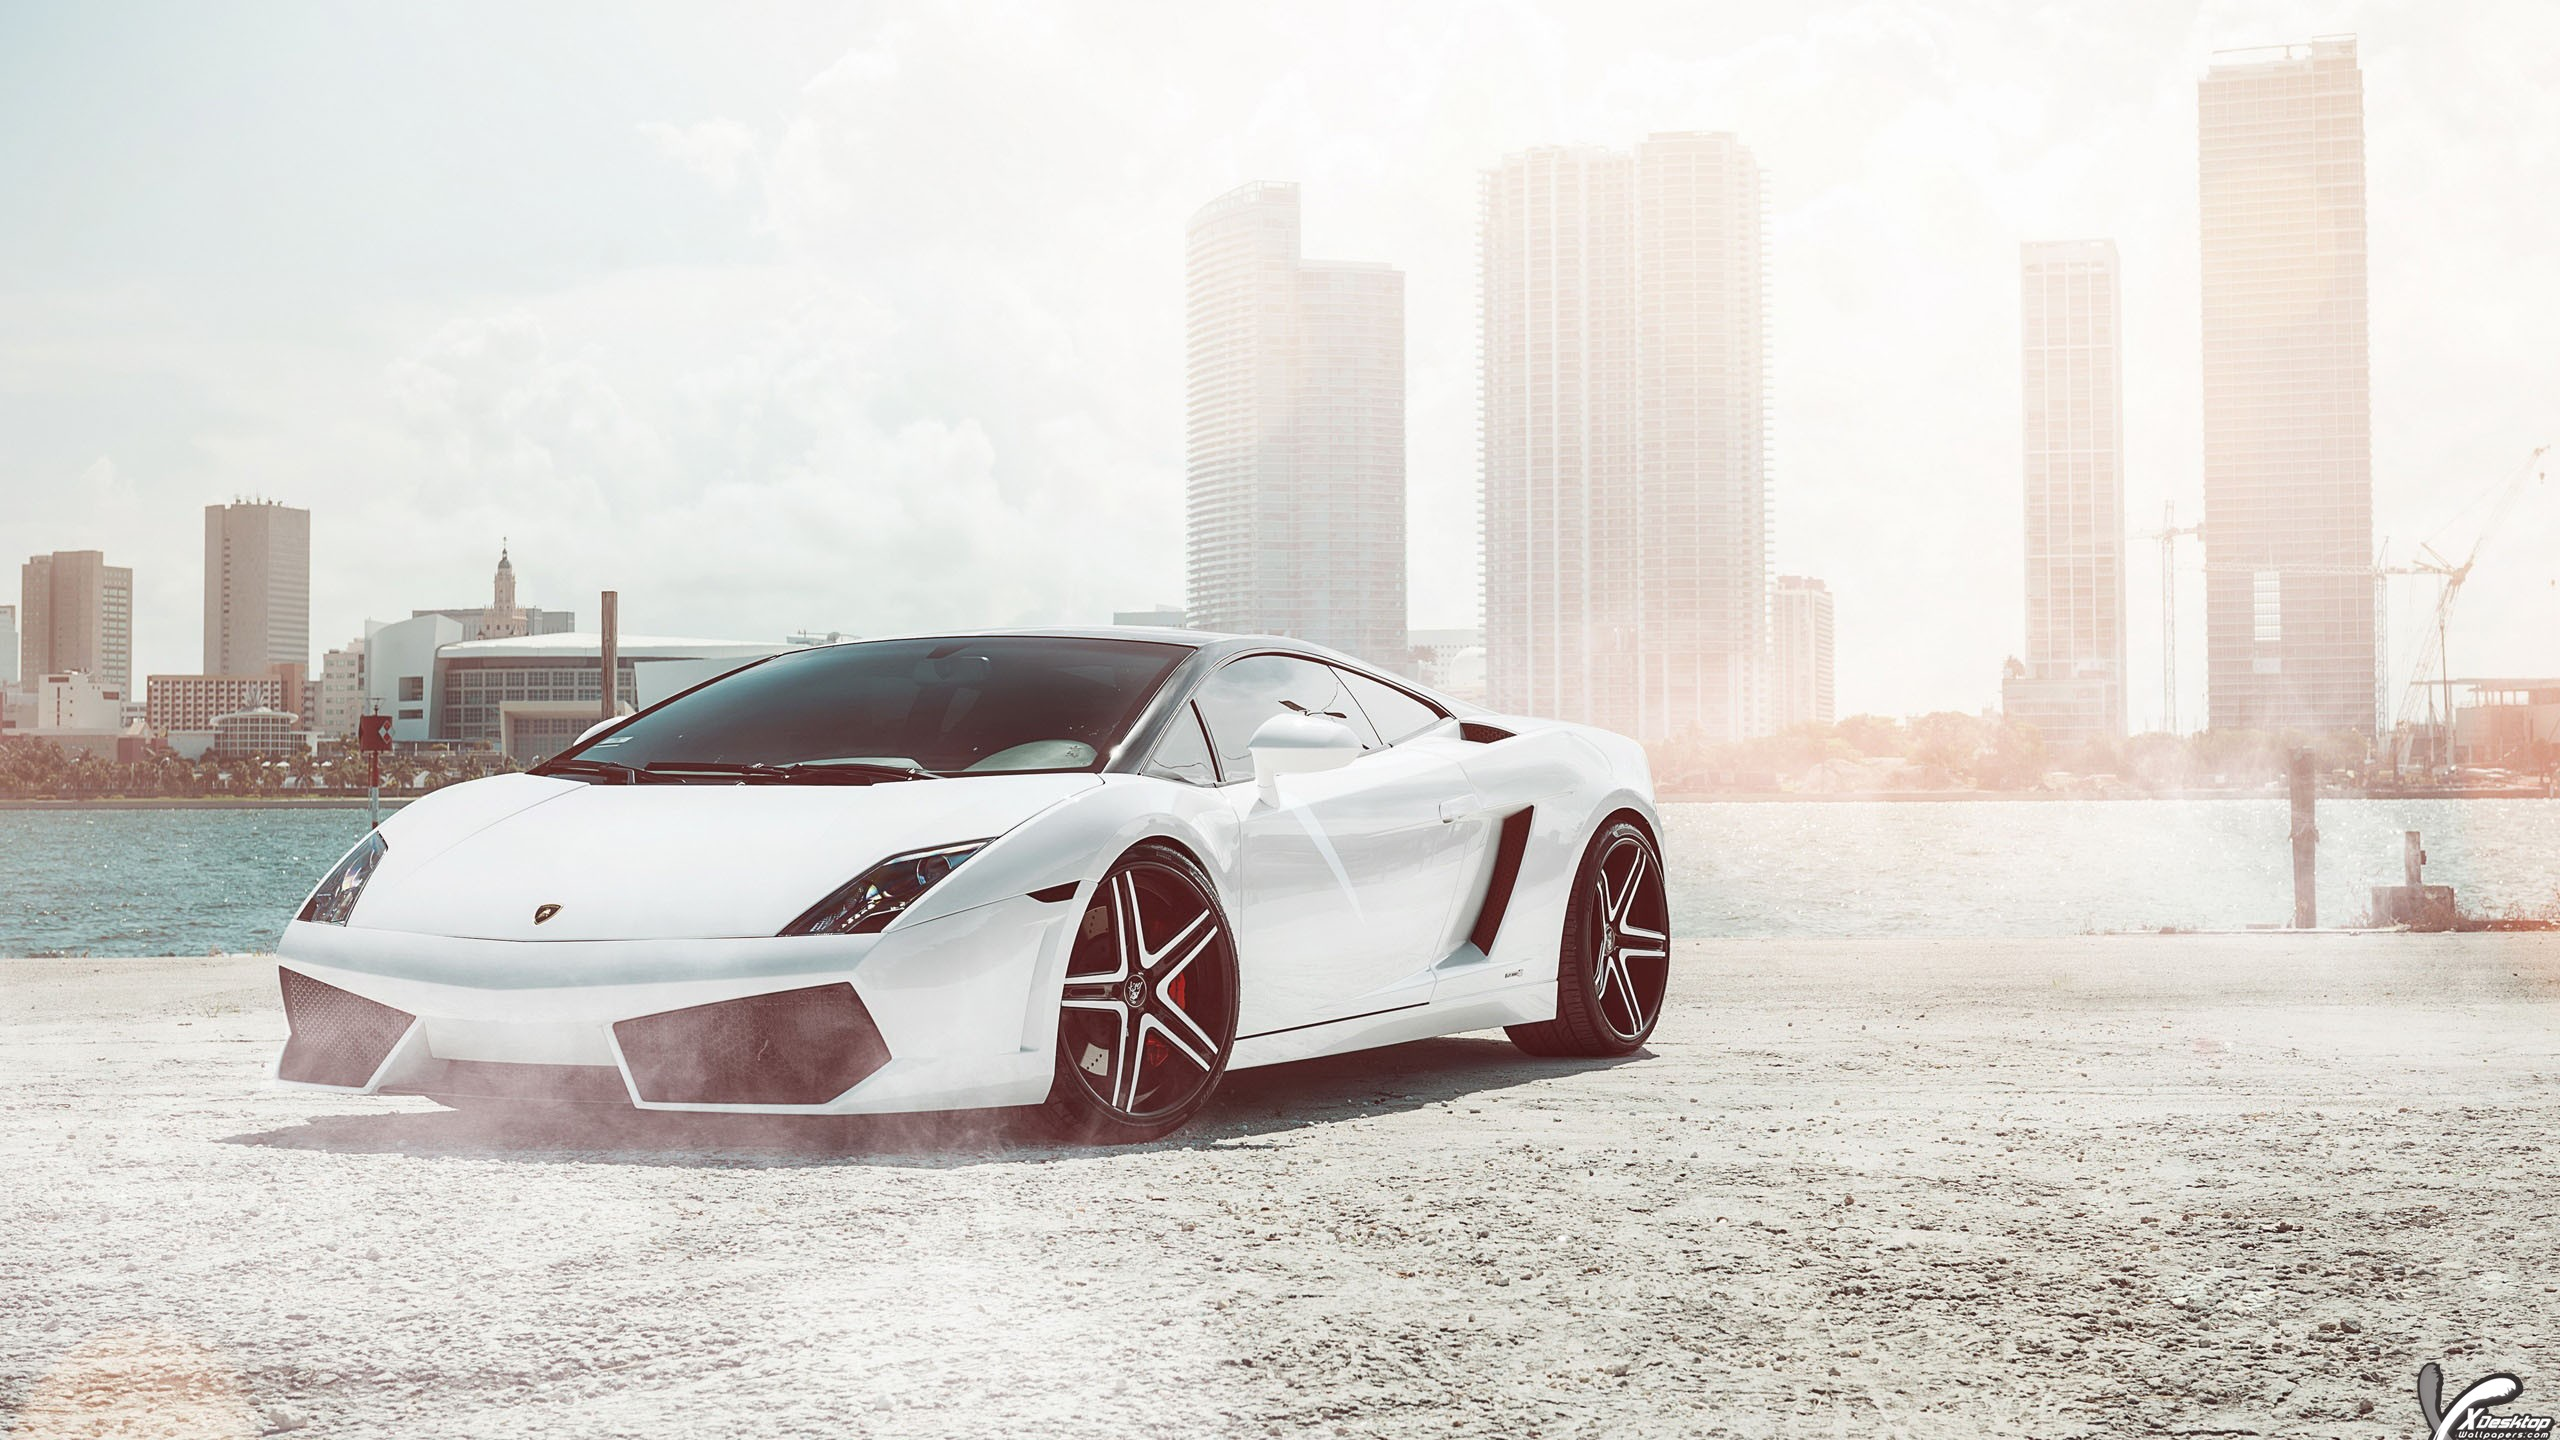 Sport Cars Wallpapers Photos Images In Hd